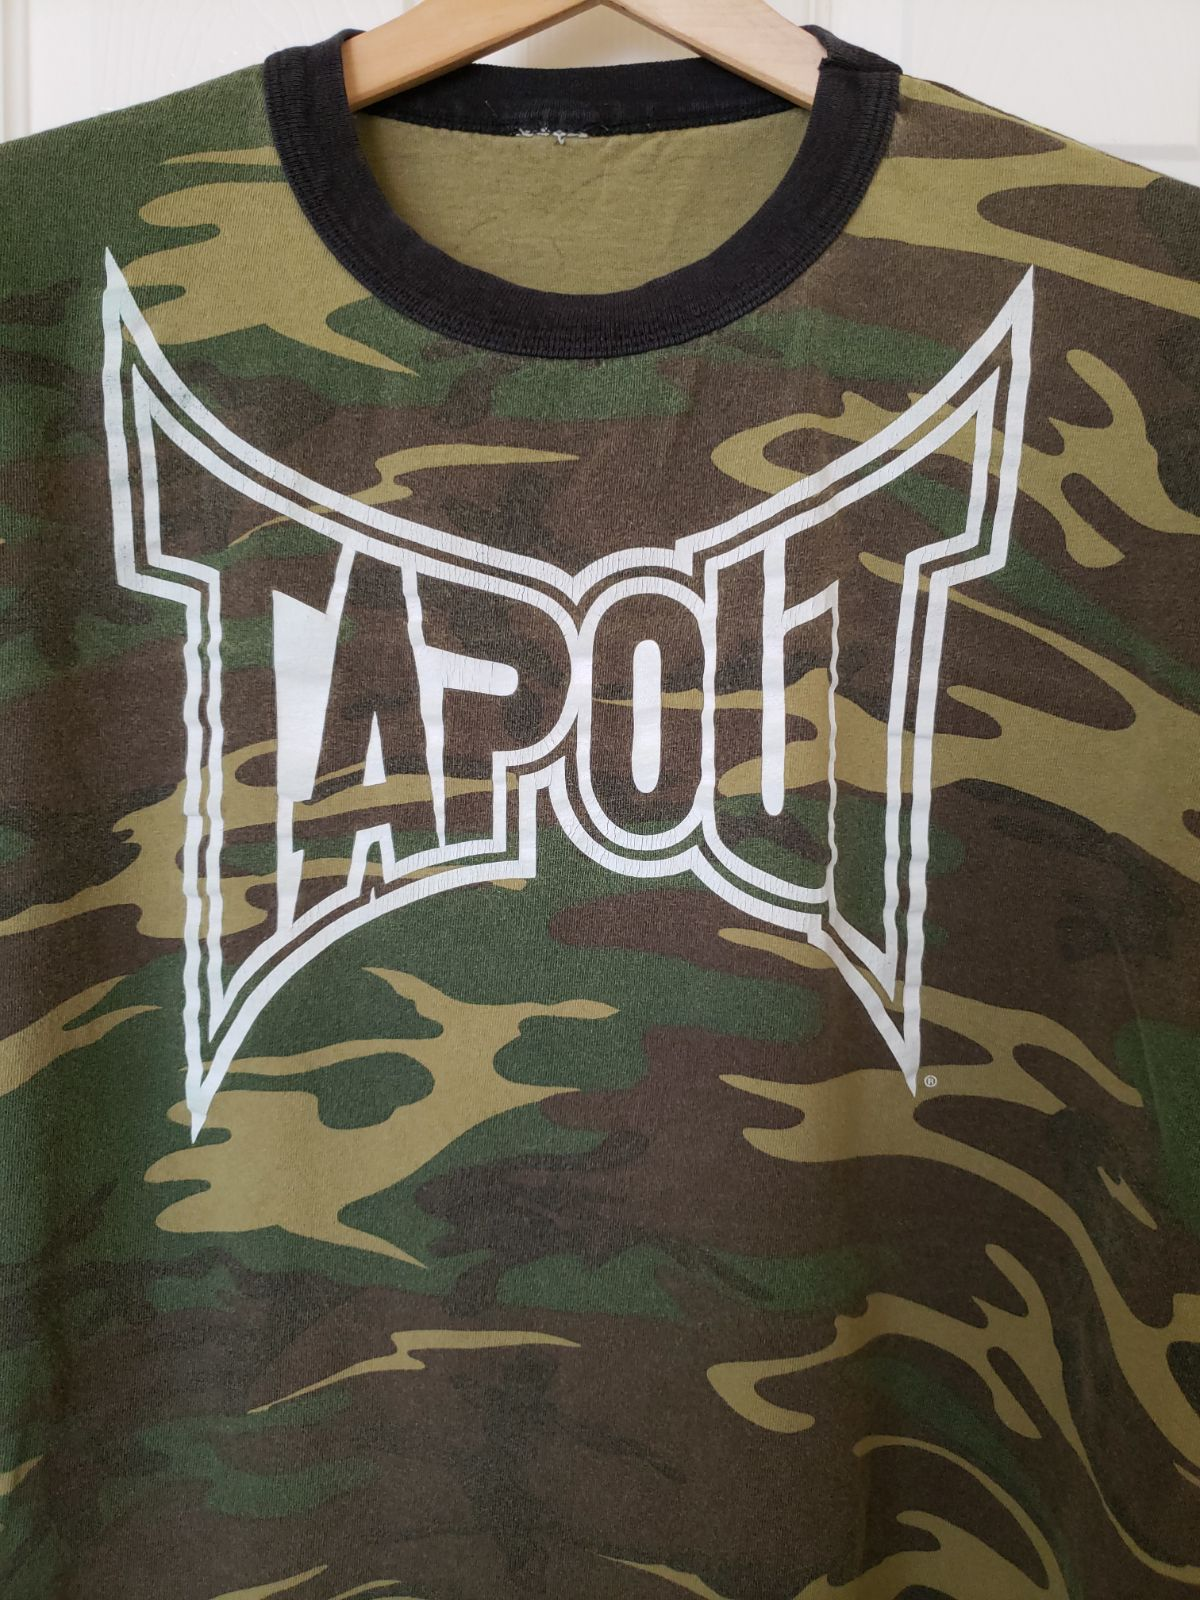 Old School Tapout tshirt